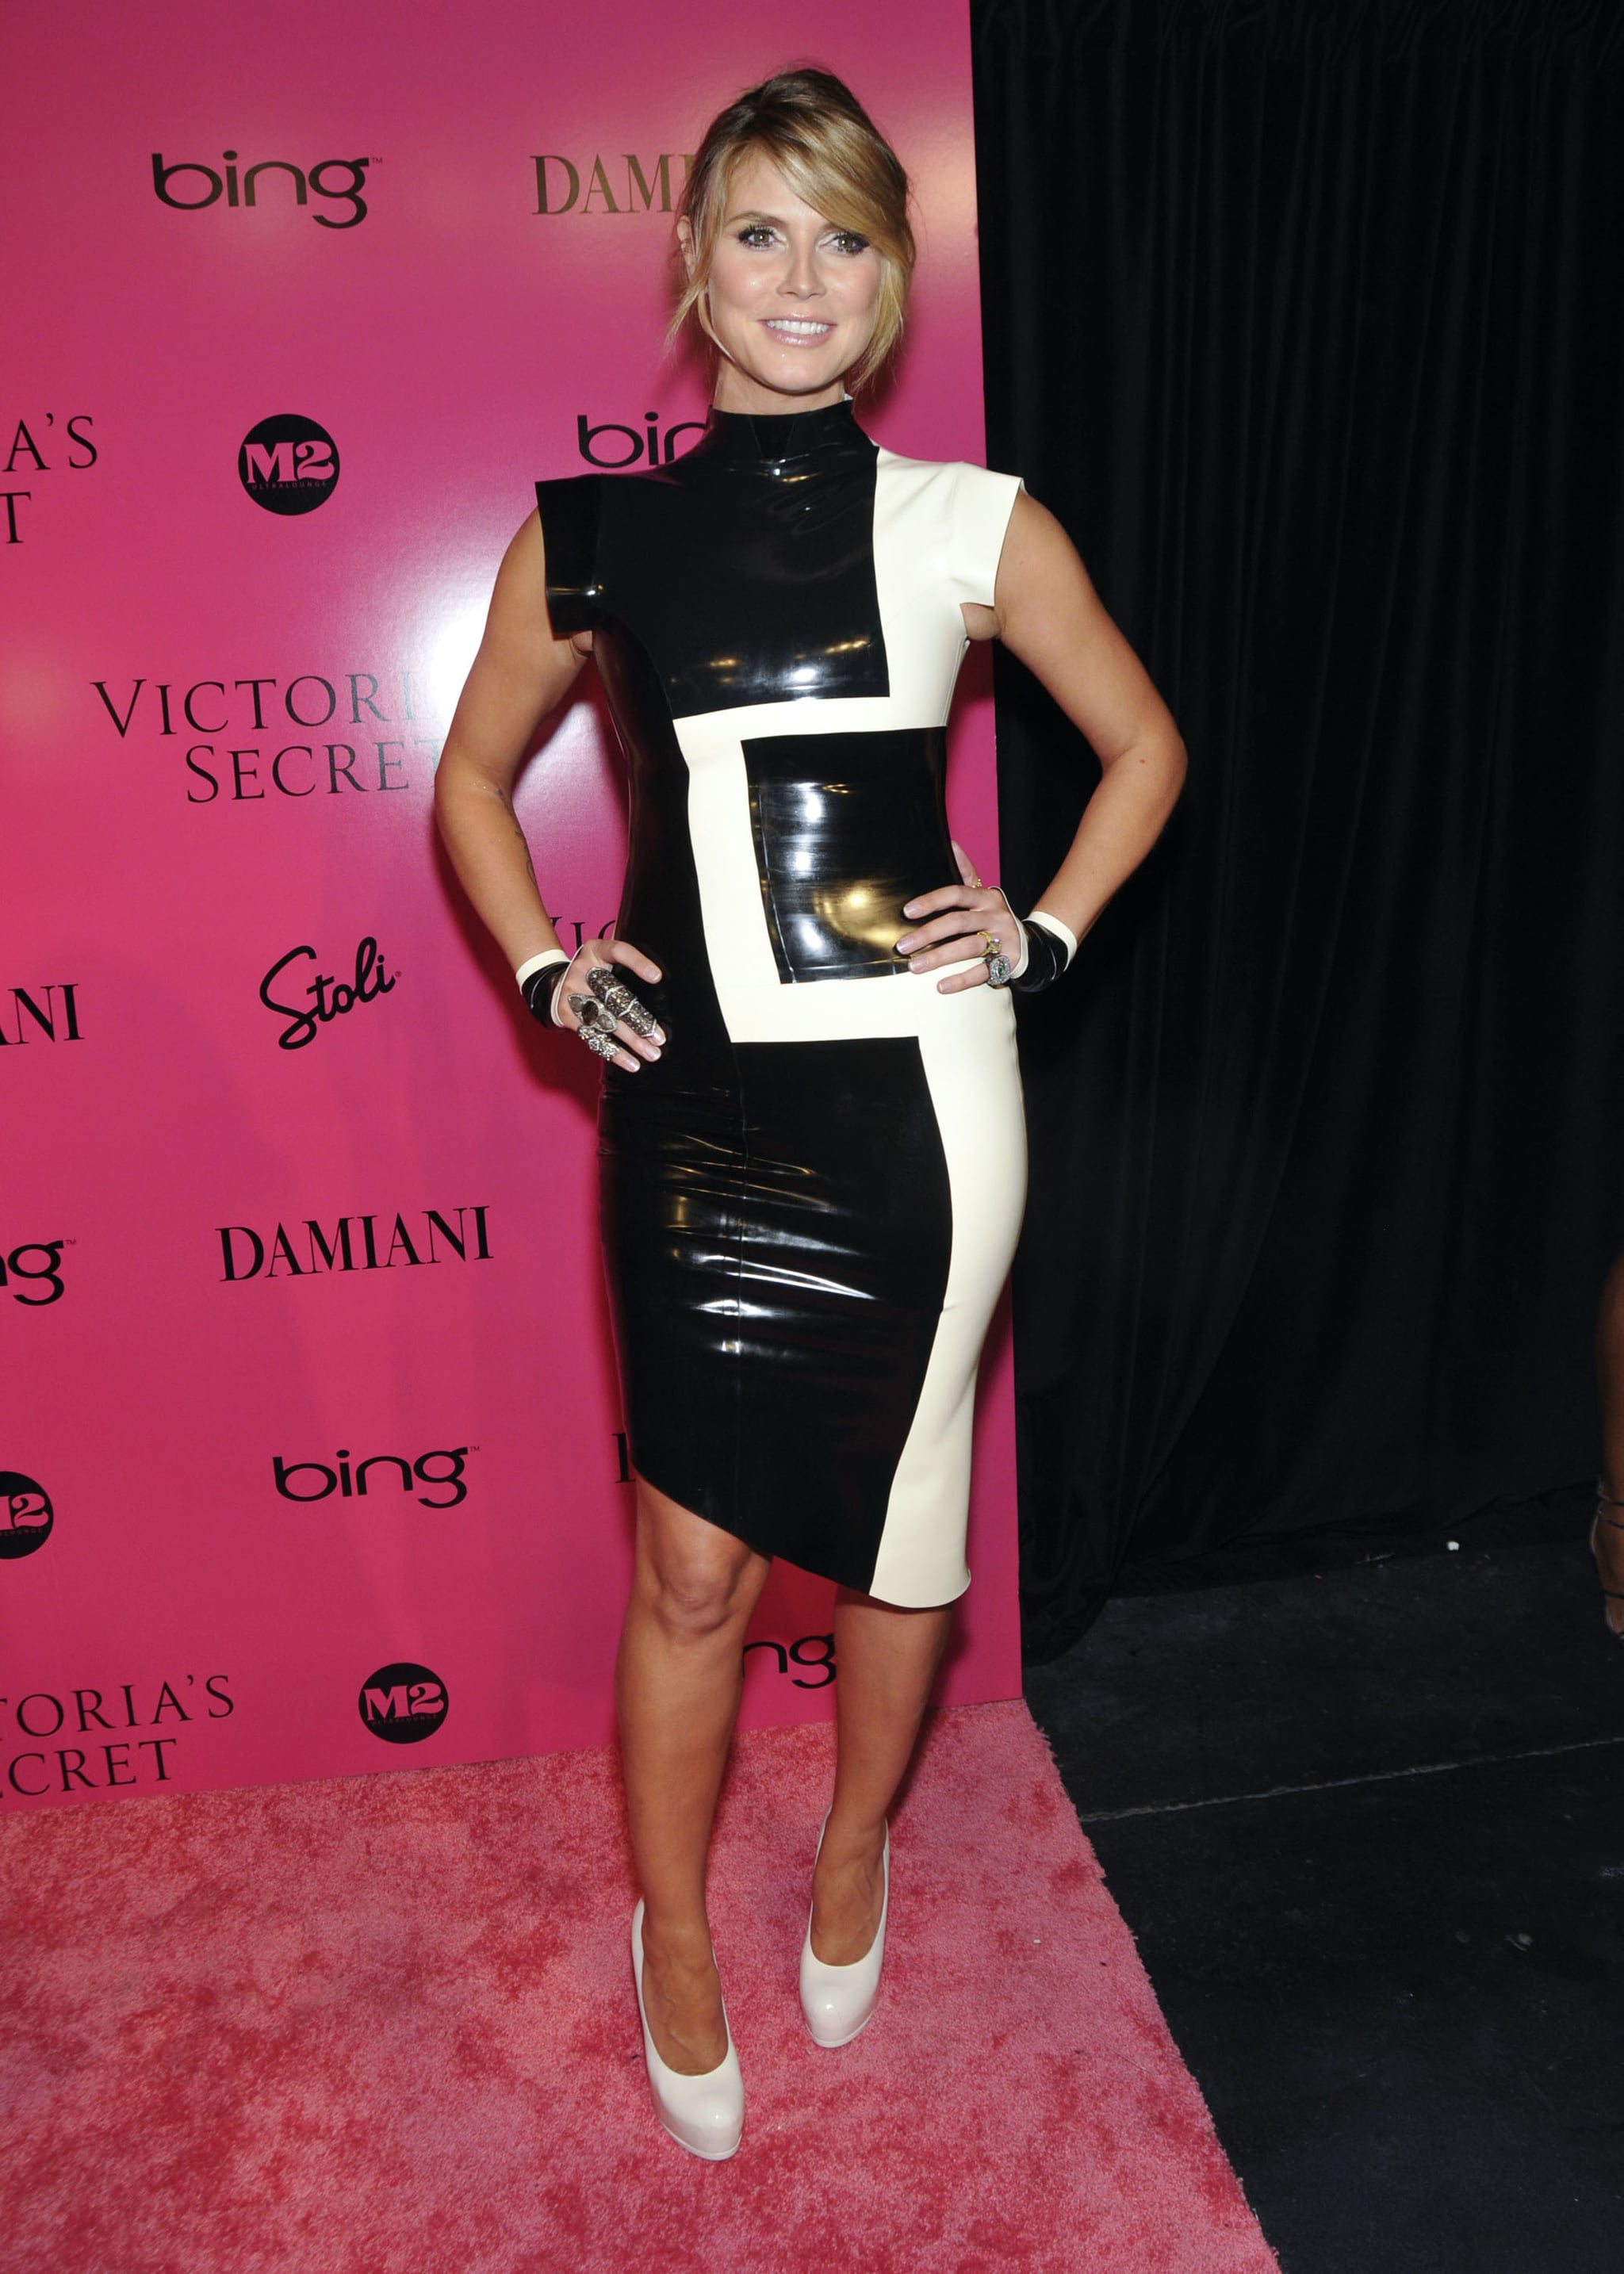 Heidi Klum in a Latex Dress at the 2009 Victoria's Secret Fashion Show